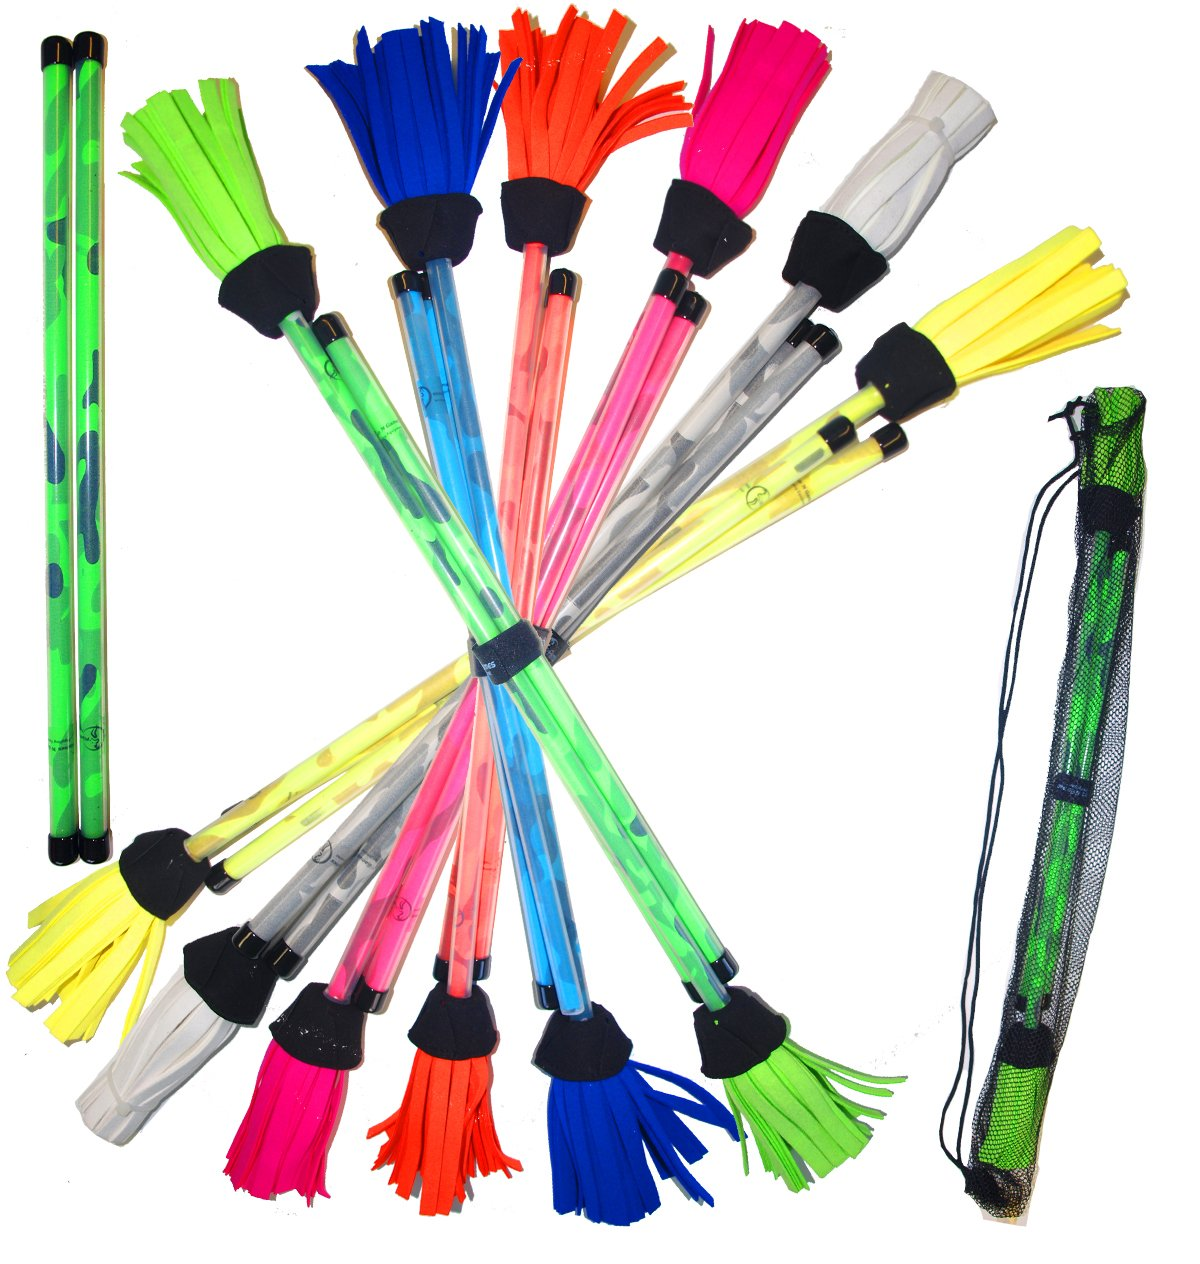 Pro COMMANDO Flower Stick Set (6 Colours) - Fiber Core With Silicone Coating + Camo Wooden Handsticks + Mr Babache Devil Stick Book(Price is for ONE Flowerstick & Handstick set) (Pink/Pink Handsticks)